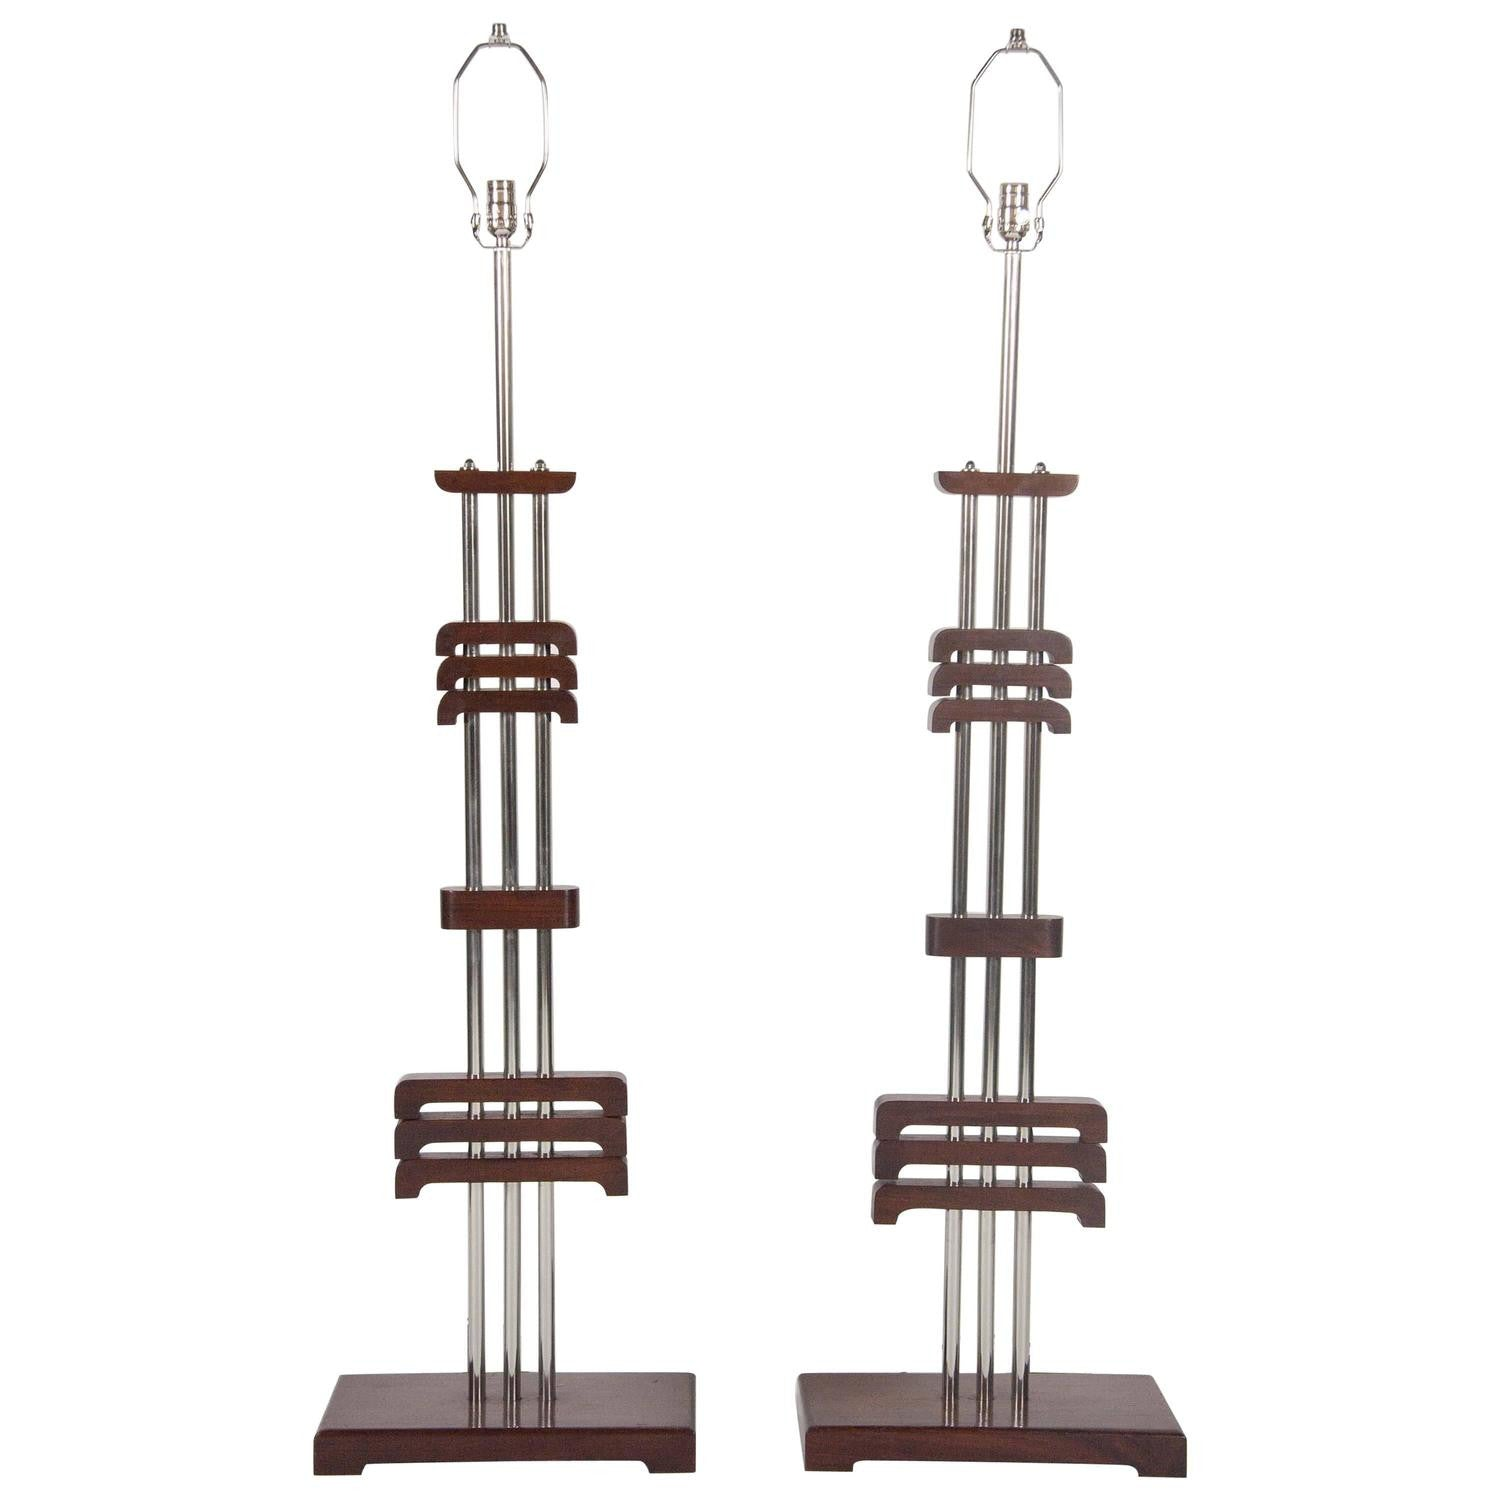 Pair of Art Deco Floor Lamps in the Manner of Donald Deskey – Avery